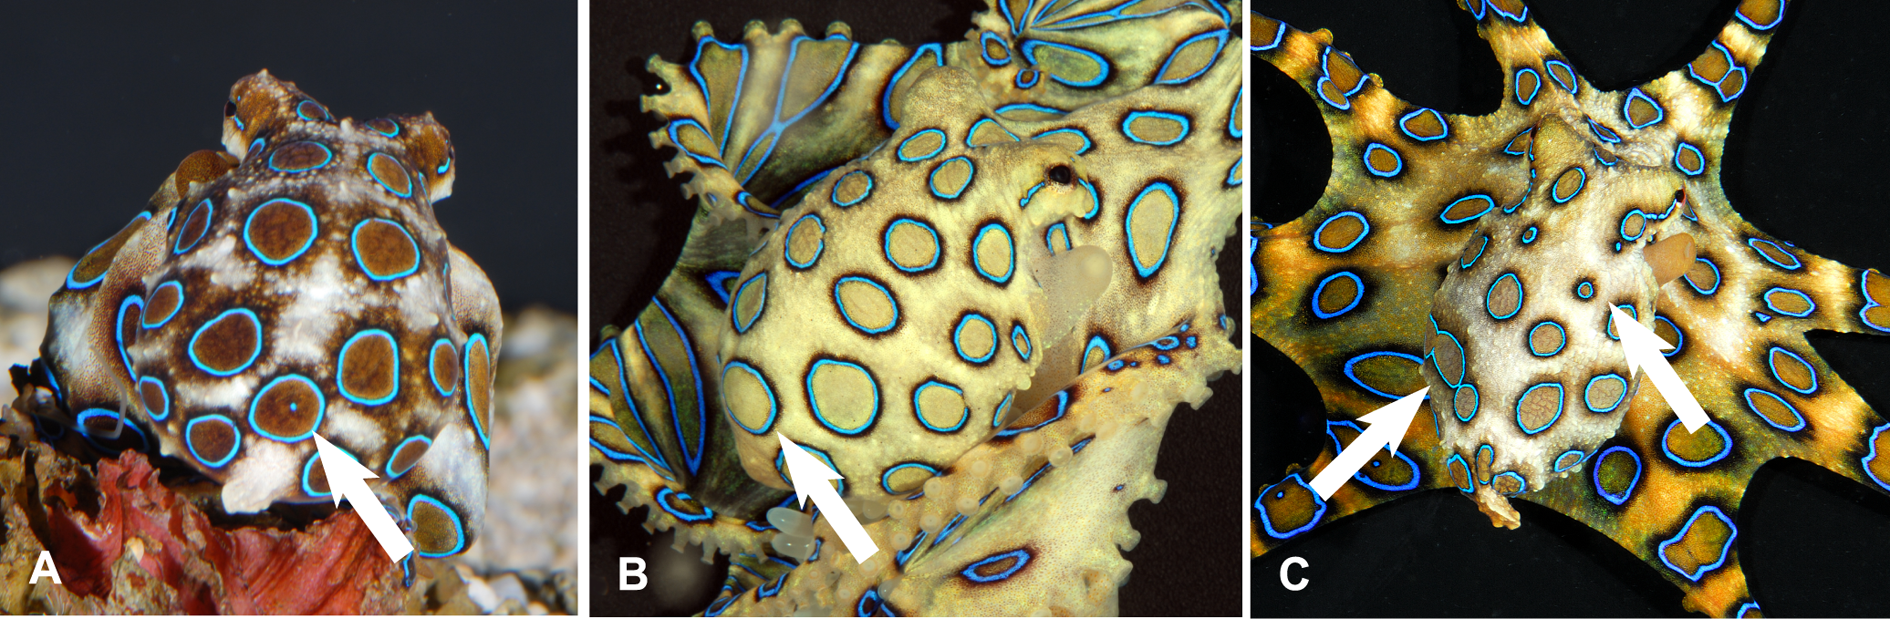 Variable ring patterns on mantles of the blue-ringed octopus Hapalochlaena lunulata.png